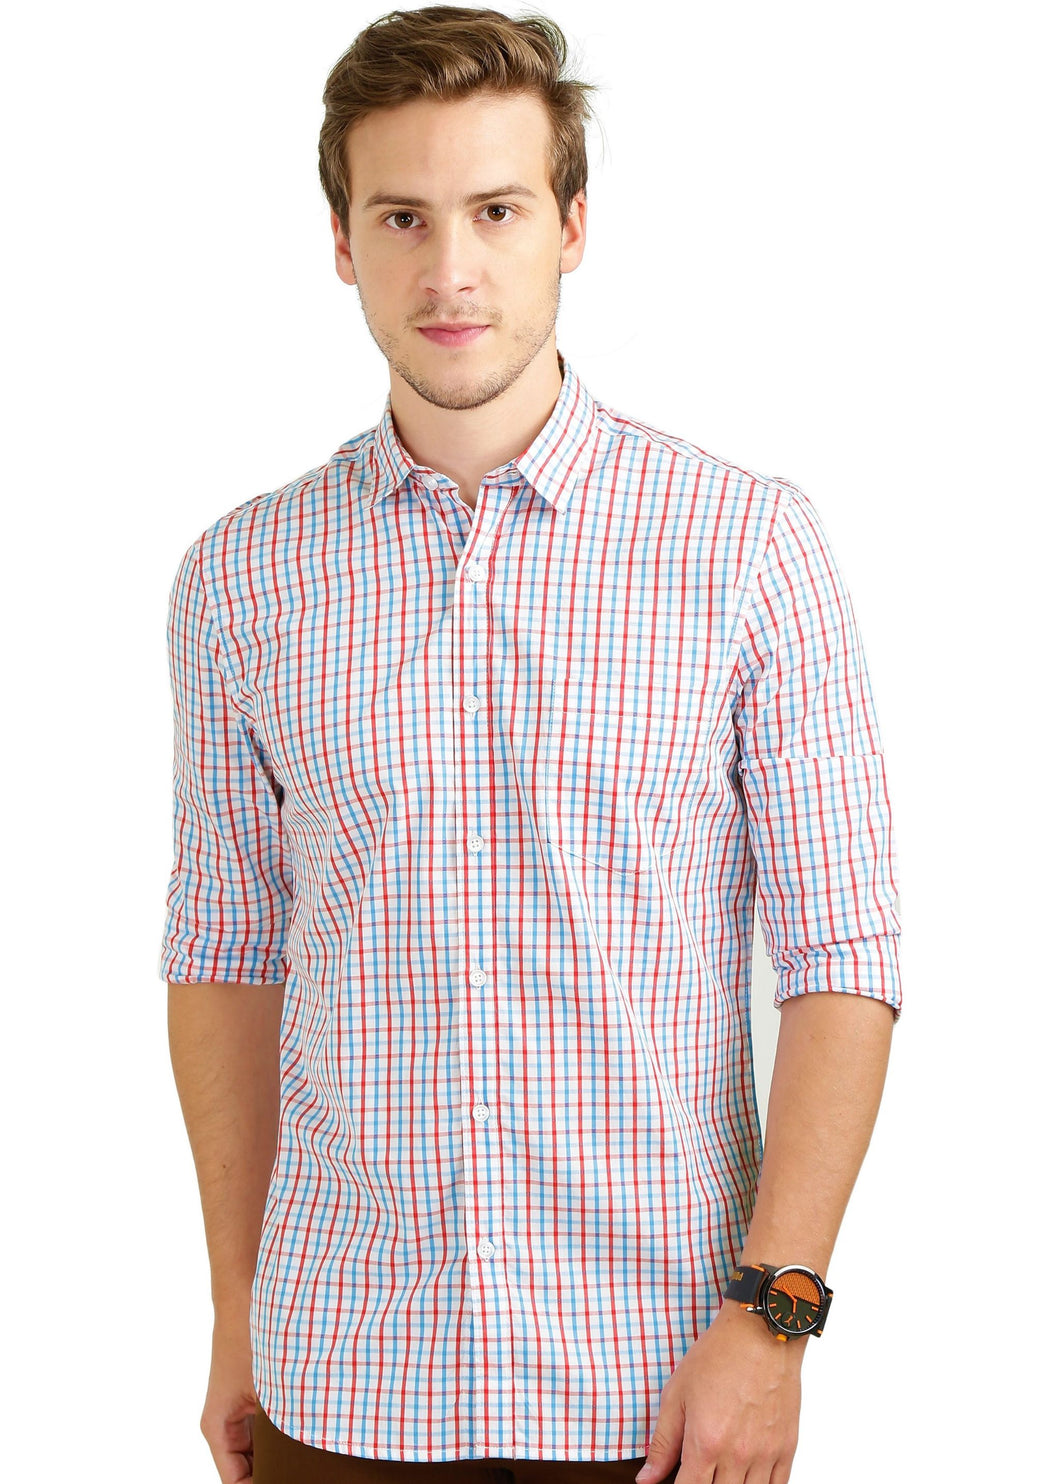 Tusok-red-blue-mazeCheckered Shirtimage-Red Blue Check (1)